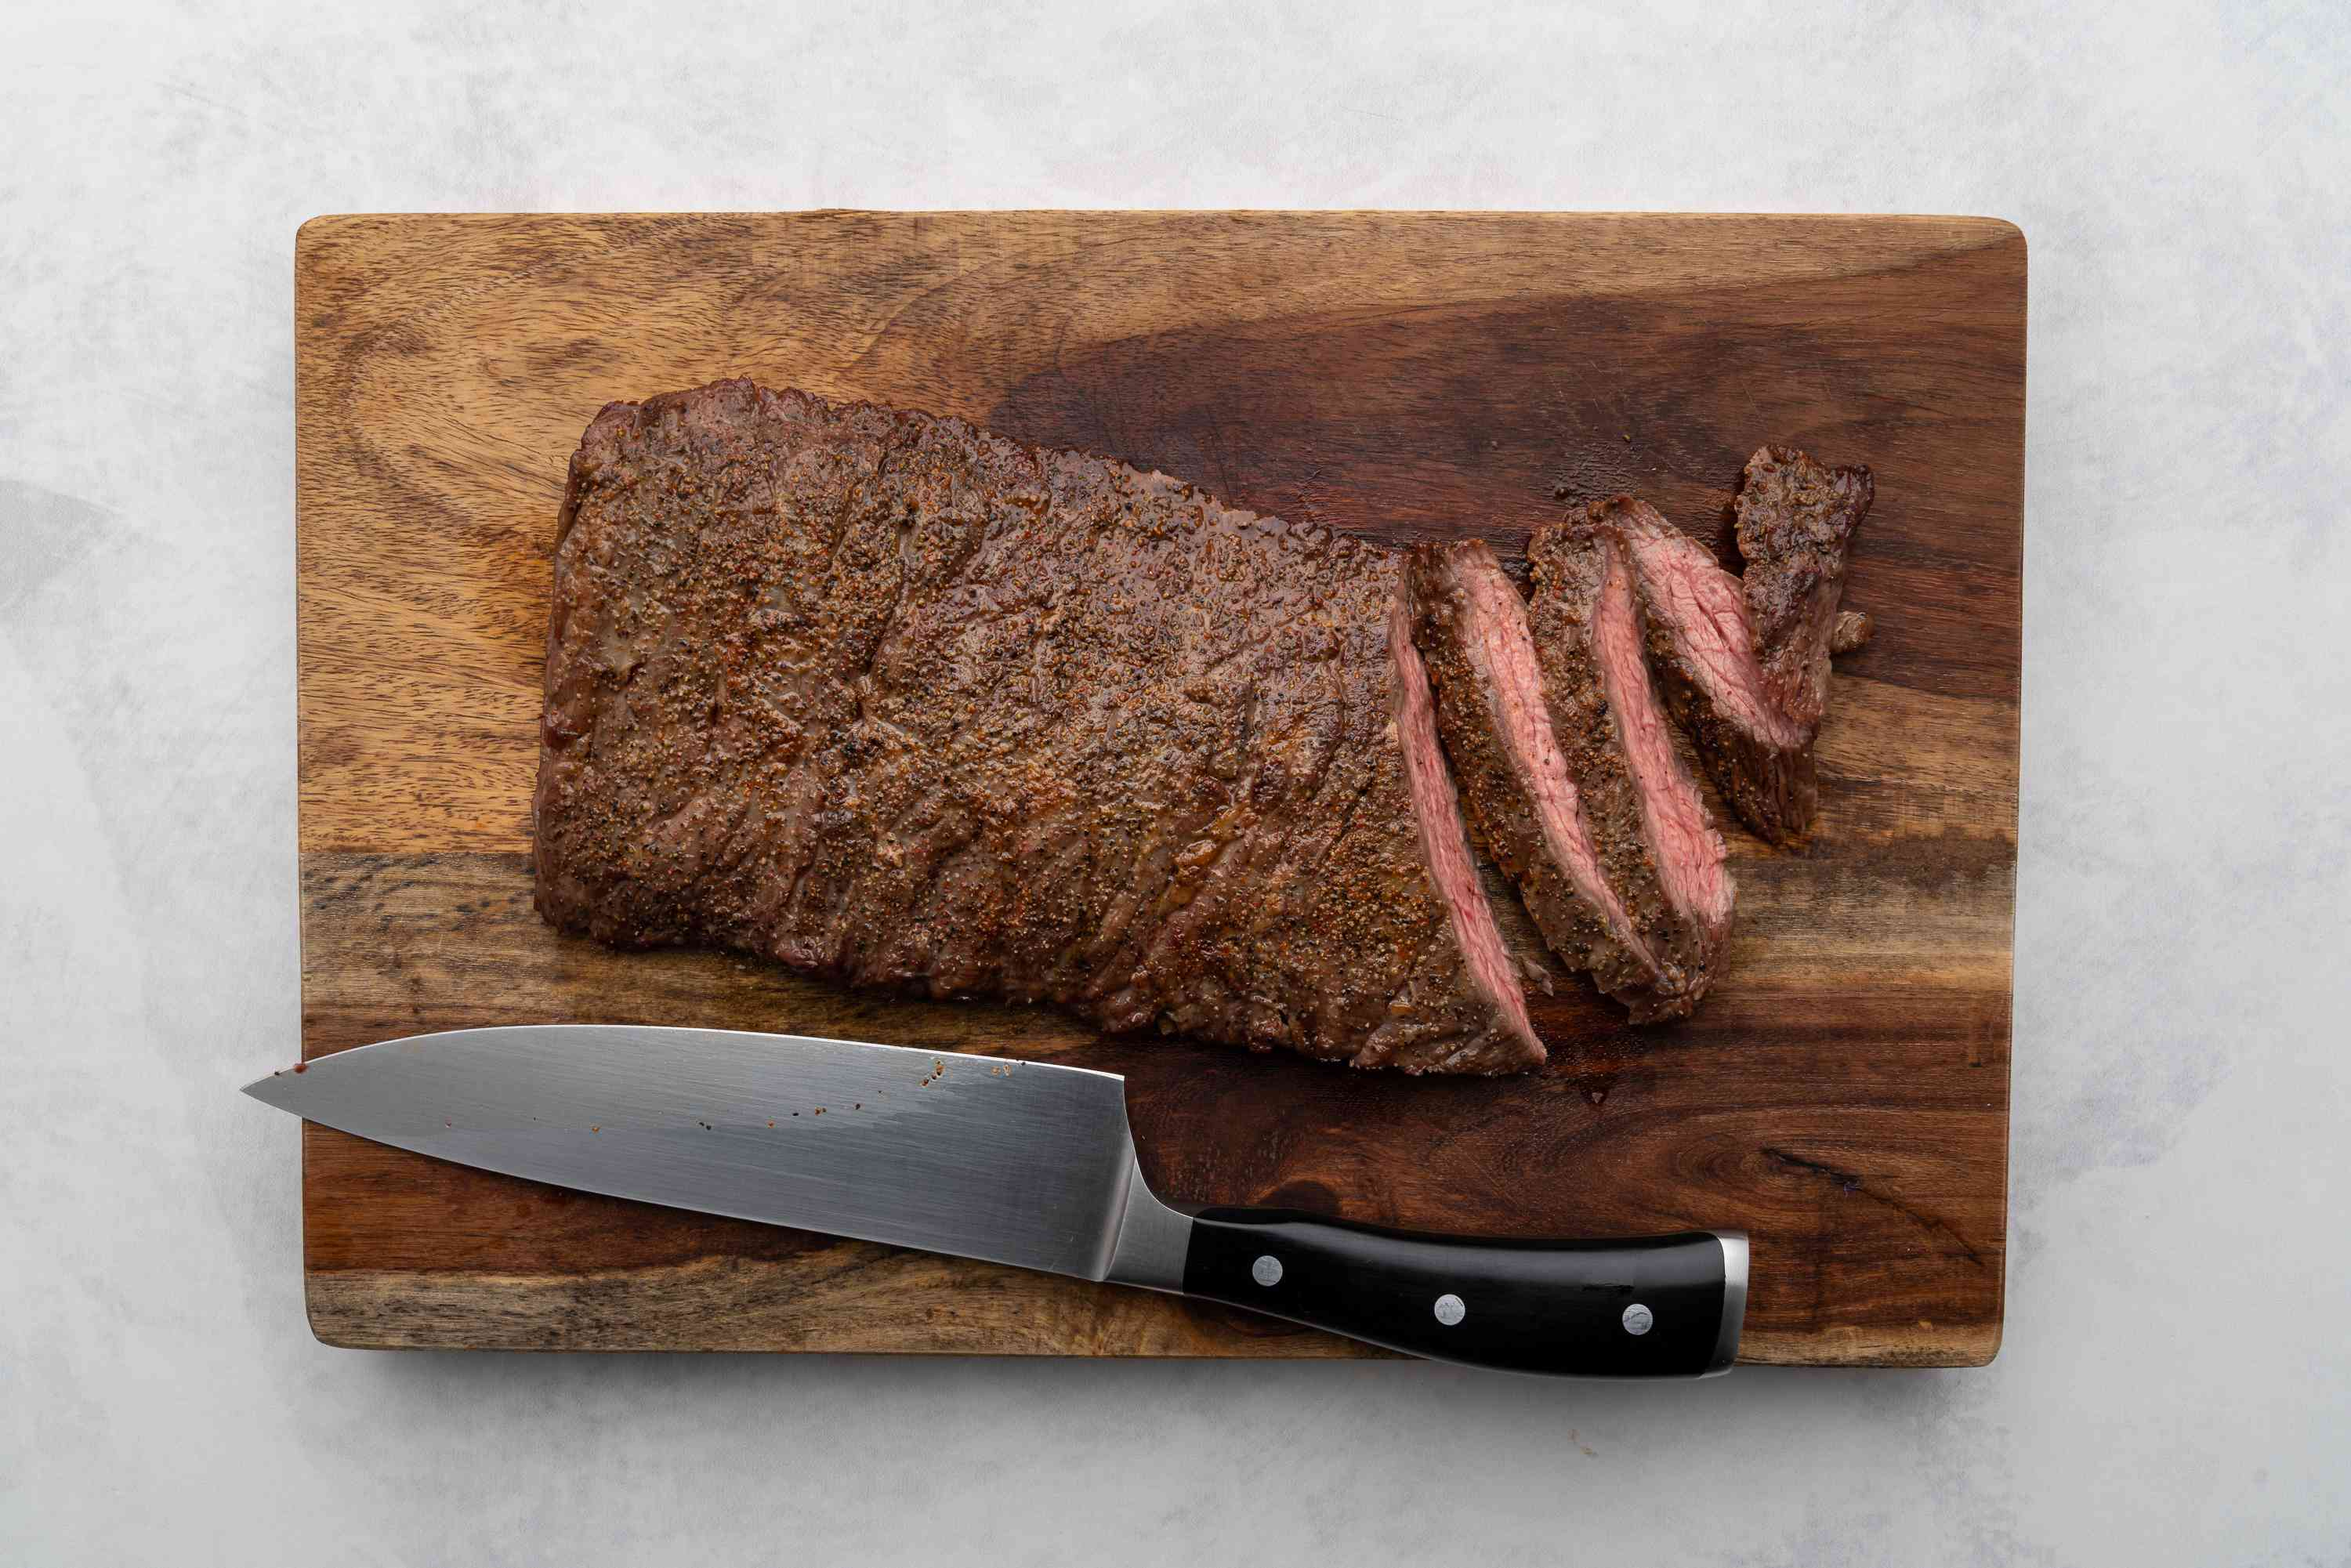 steak on cutting board with a few slices and knife resting on board